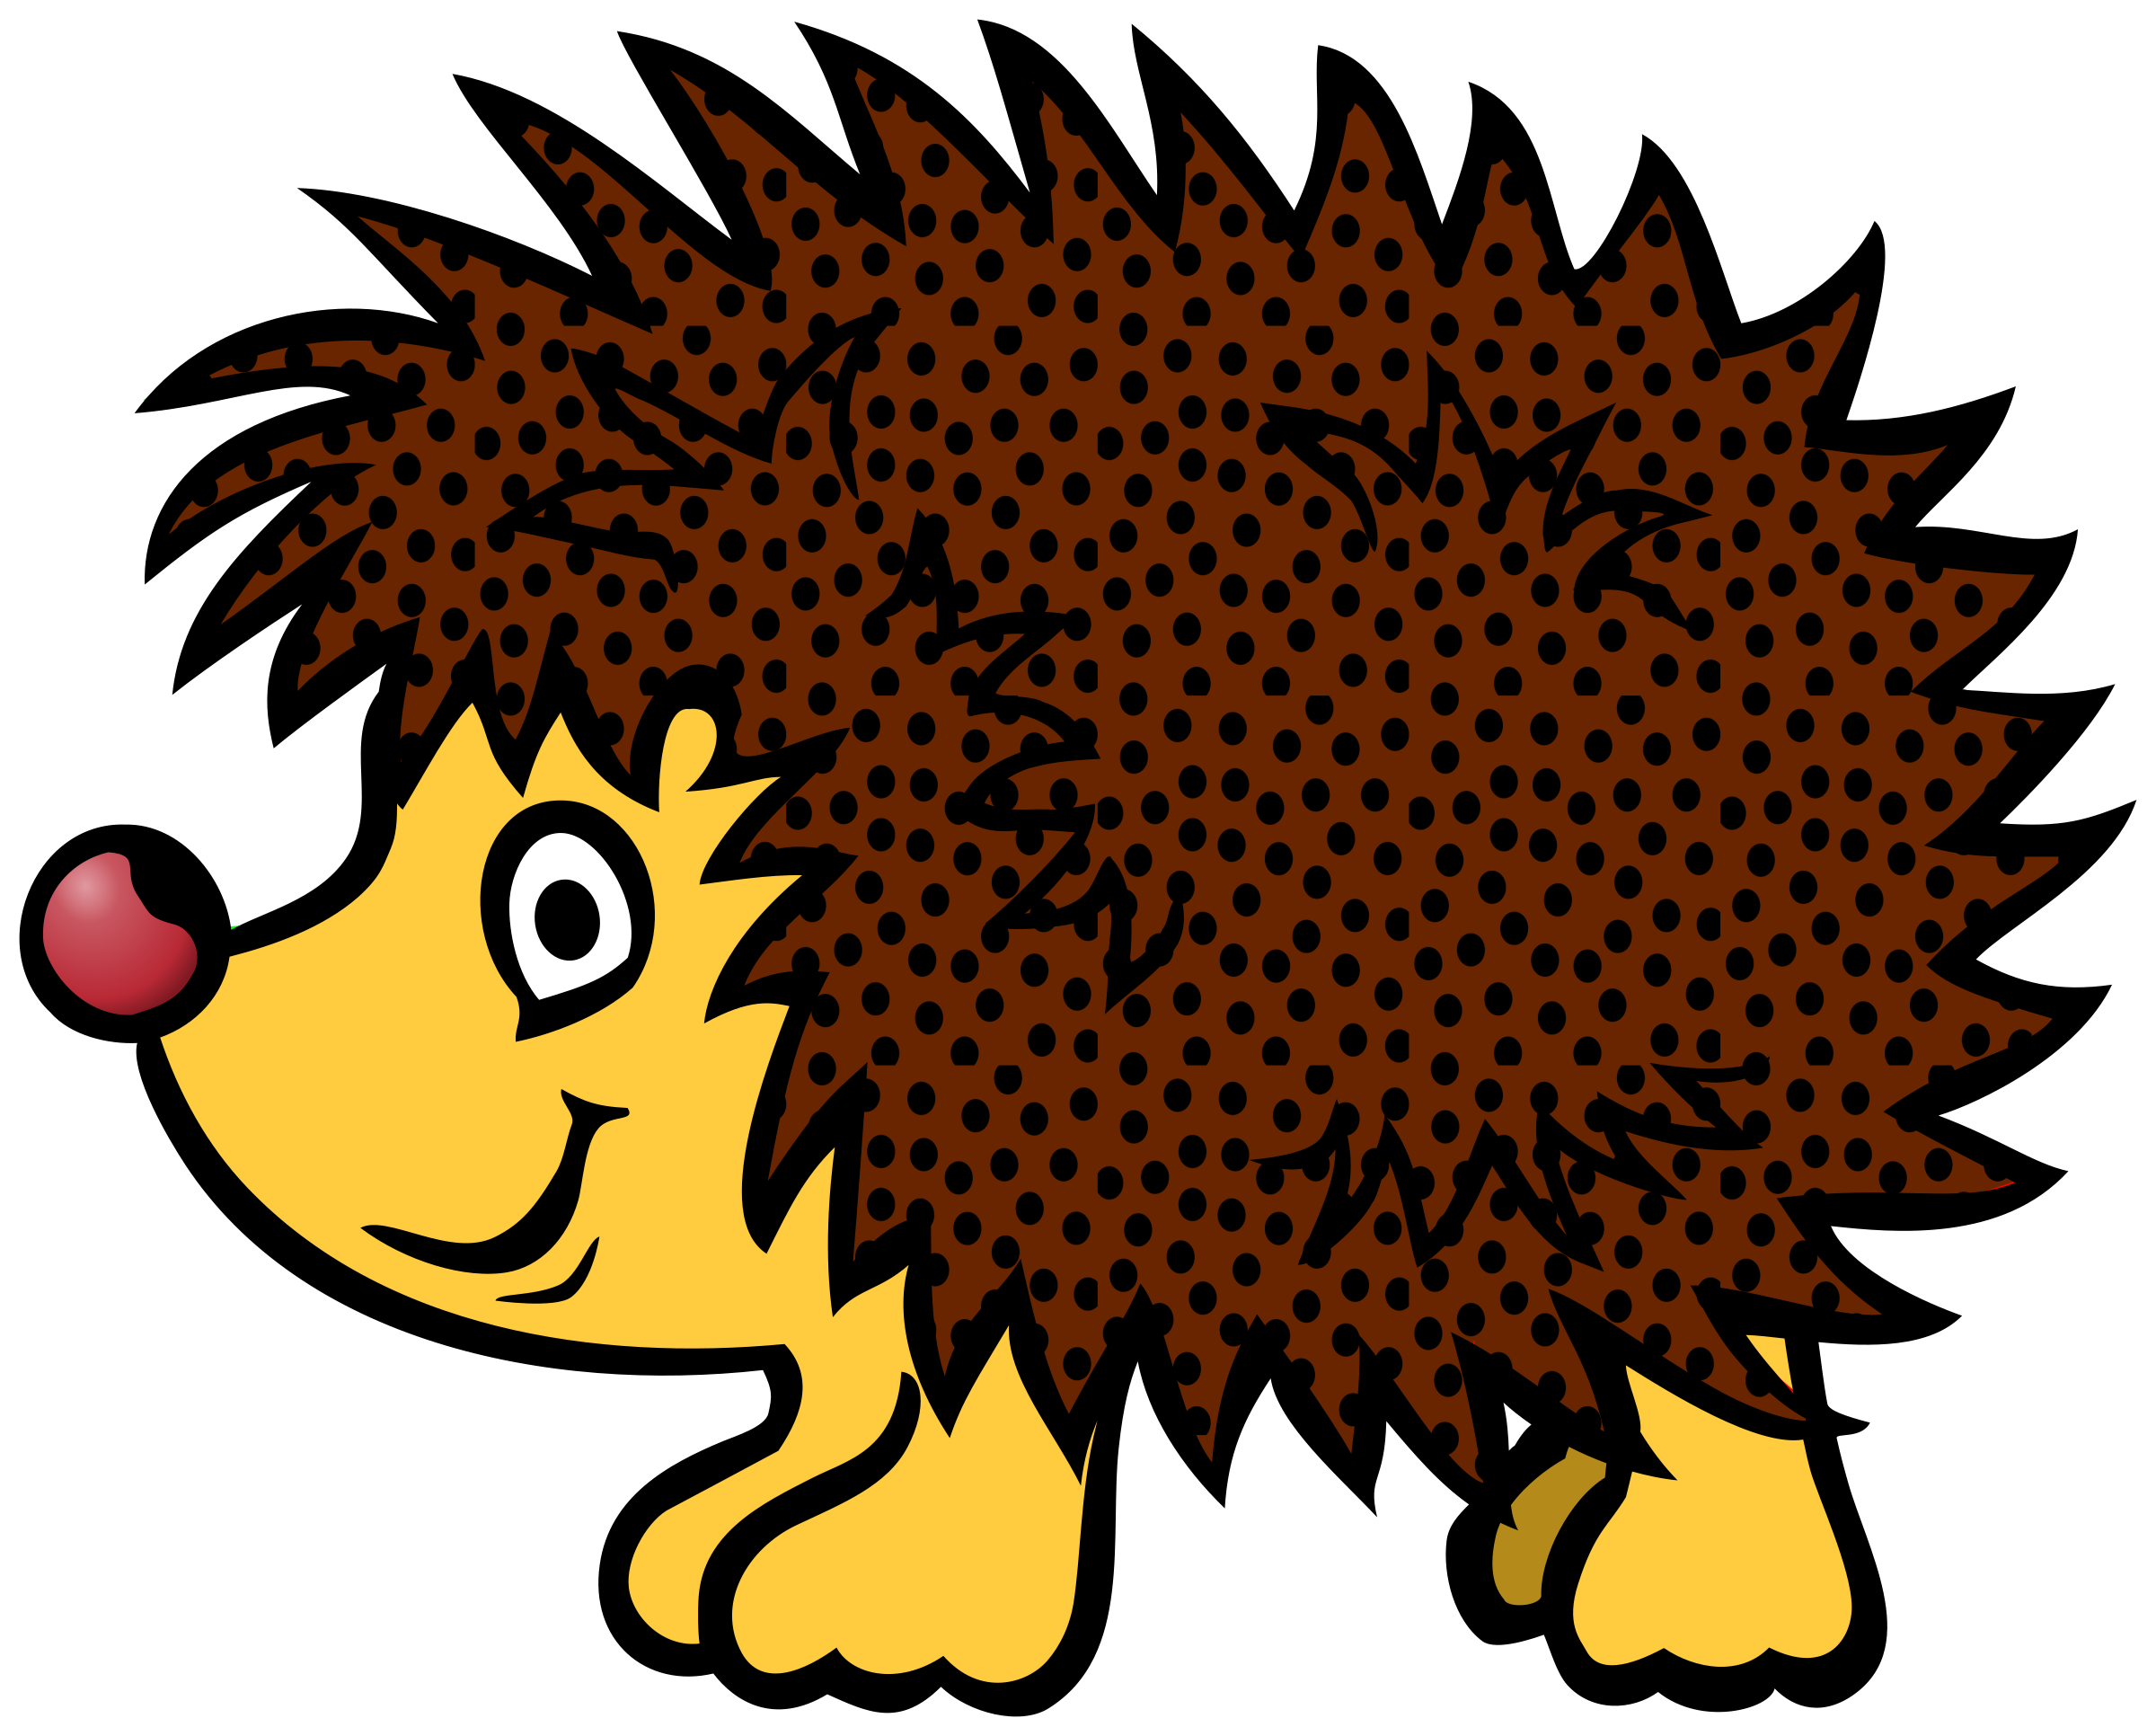 Hedgehog clipart kawaii.  collection of png